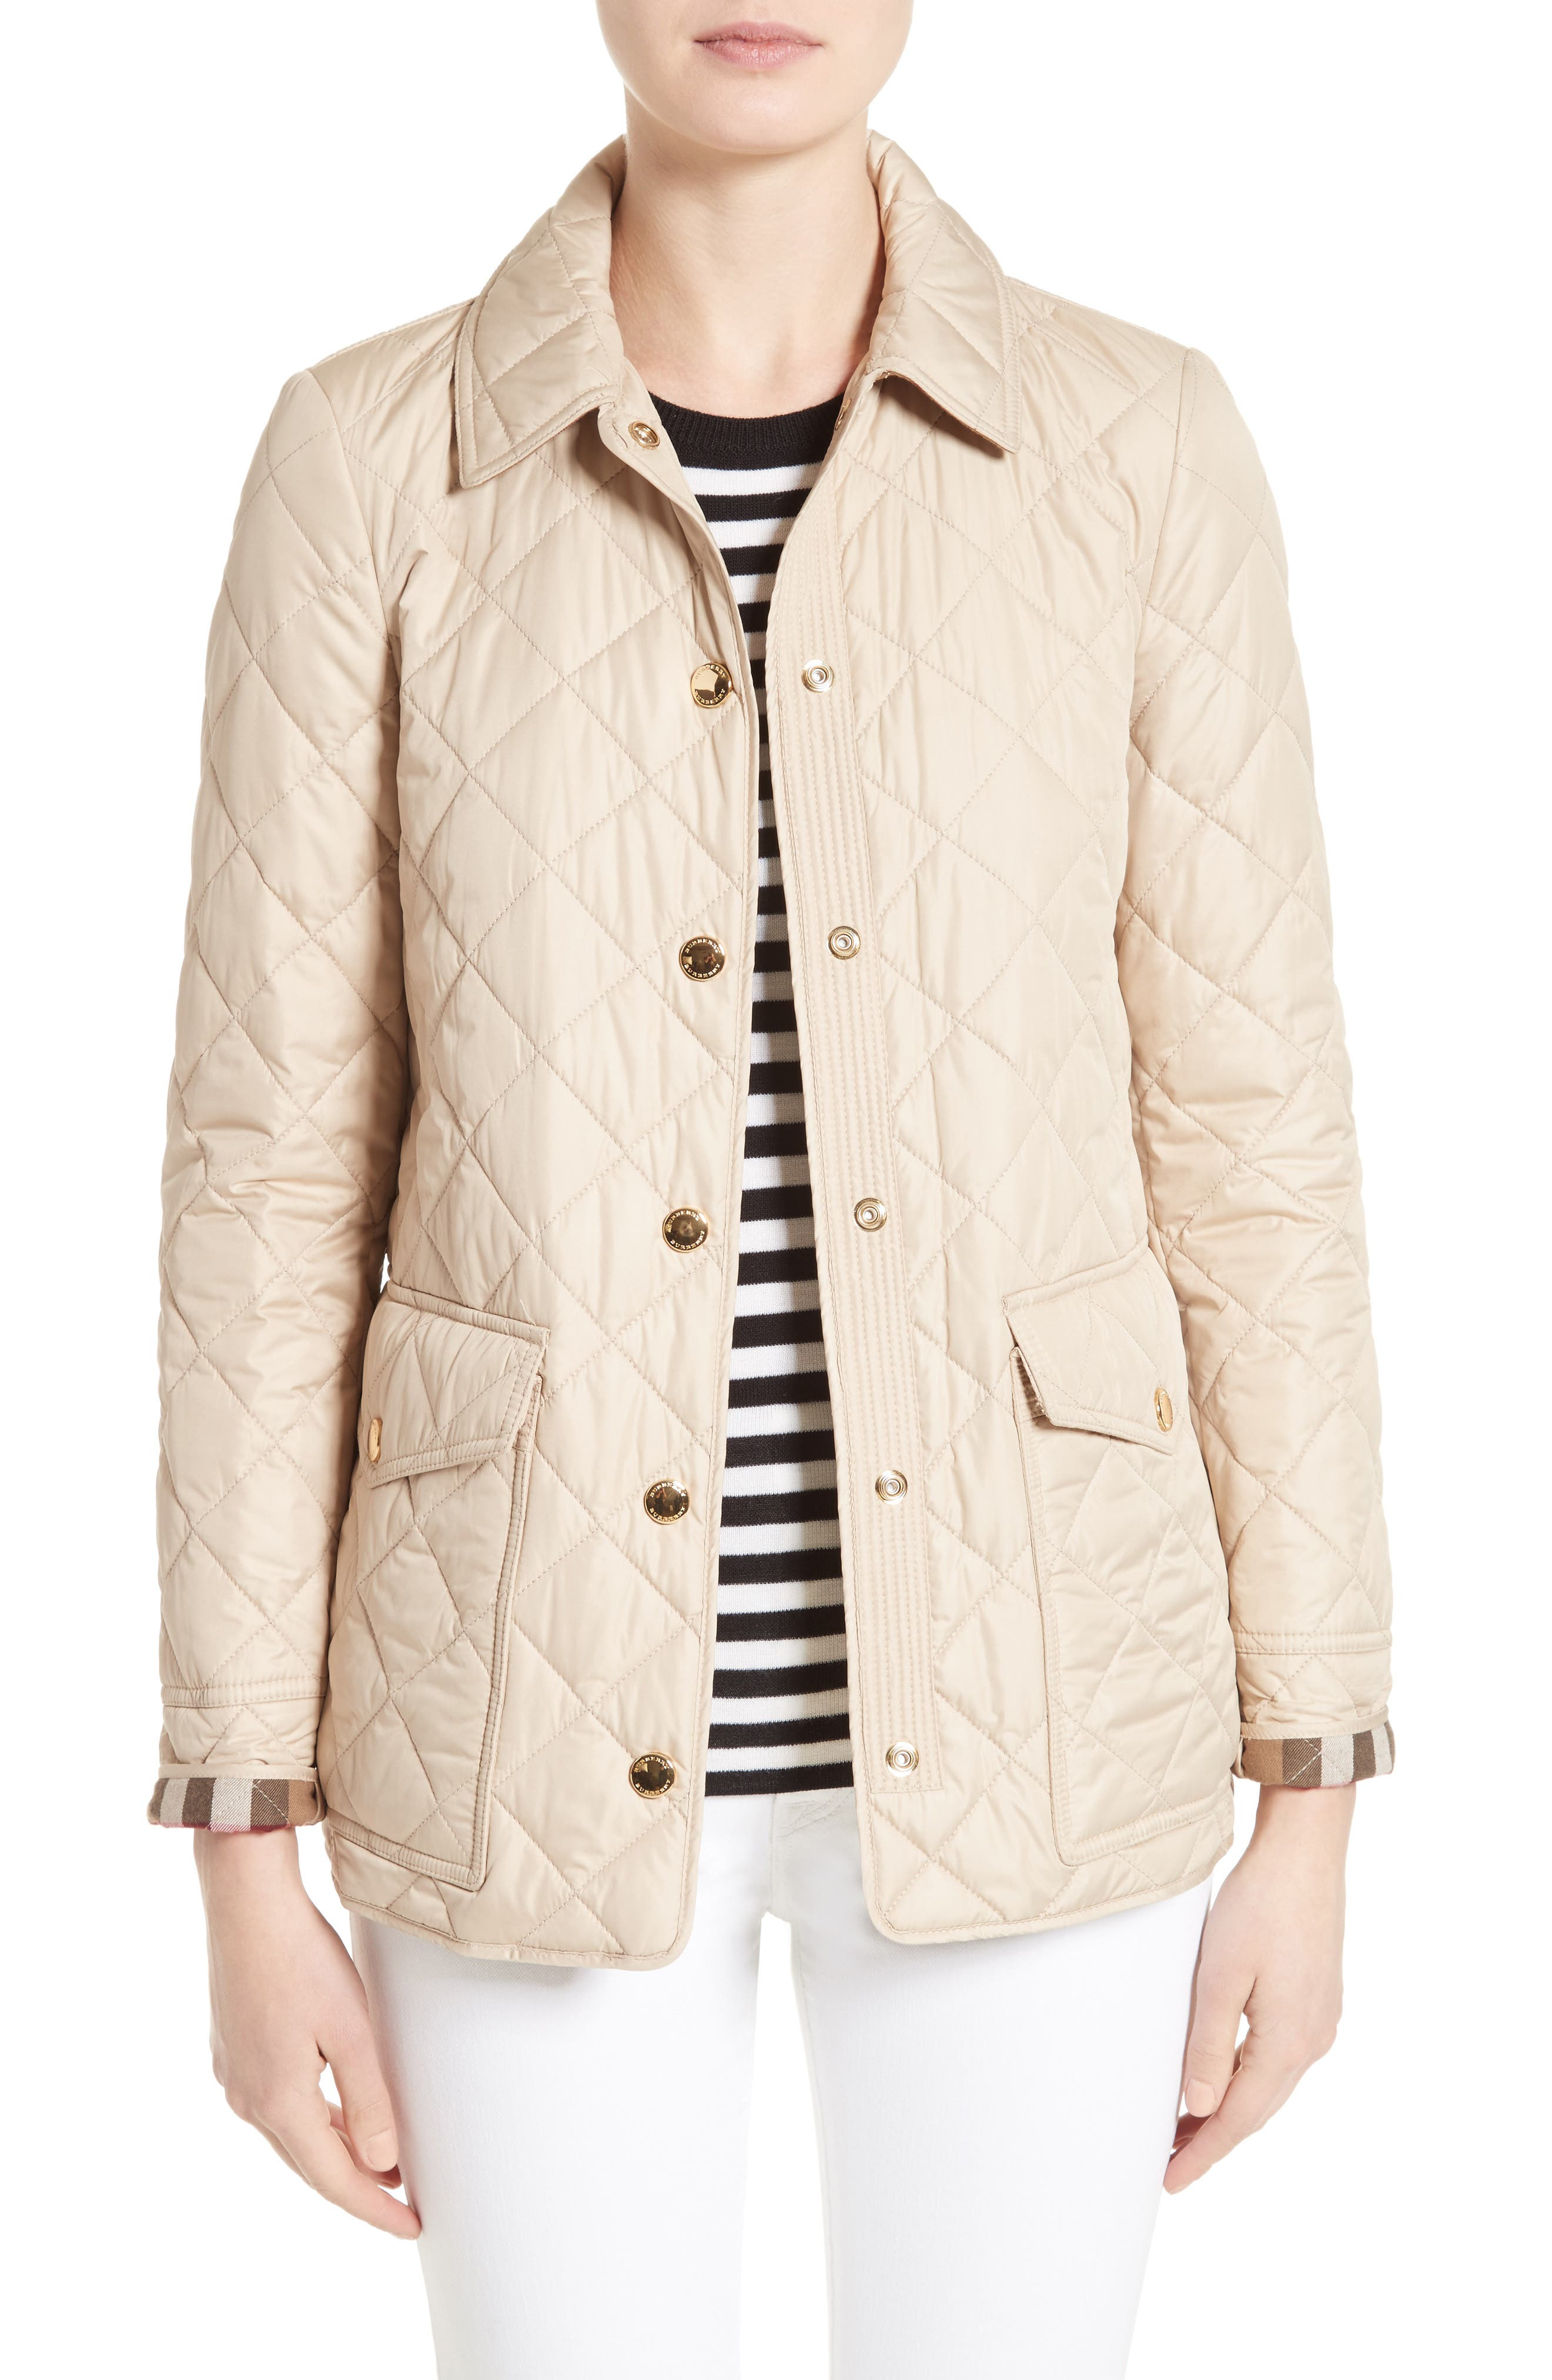 Westbridge Quilted Jacket,                             Main thumbnail 1, color,                             250